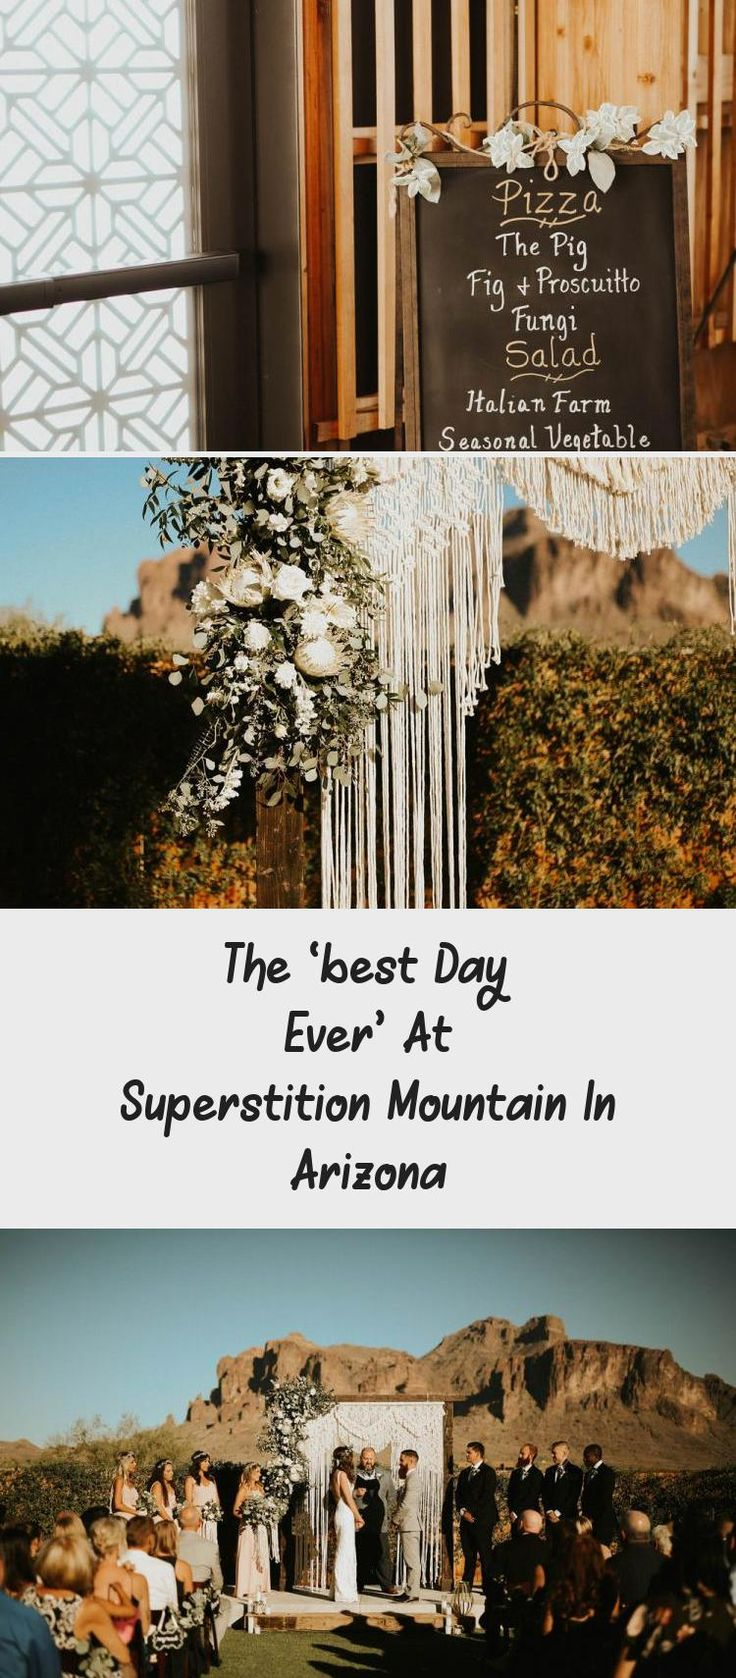 The 'Best Day Ever' at Superstition Mountain in Arizona - Tremaine Ranch. A Bride and Her Bridesmaids at a Desert Wedding. #dreamwedding #arizonawedding #BridesmaidDressesWithSleeves #BridesmaidDressesWinter #ModestBridesmaidDresses #BridesmaidDresses2018 #BridesmaidDressesStyles